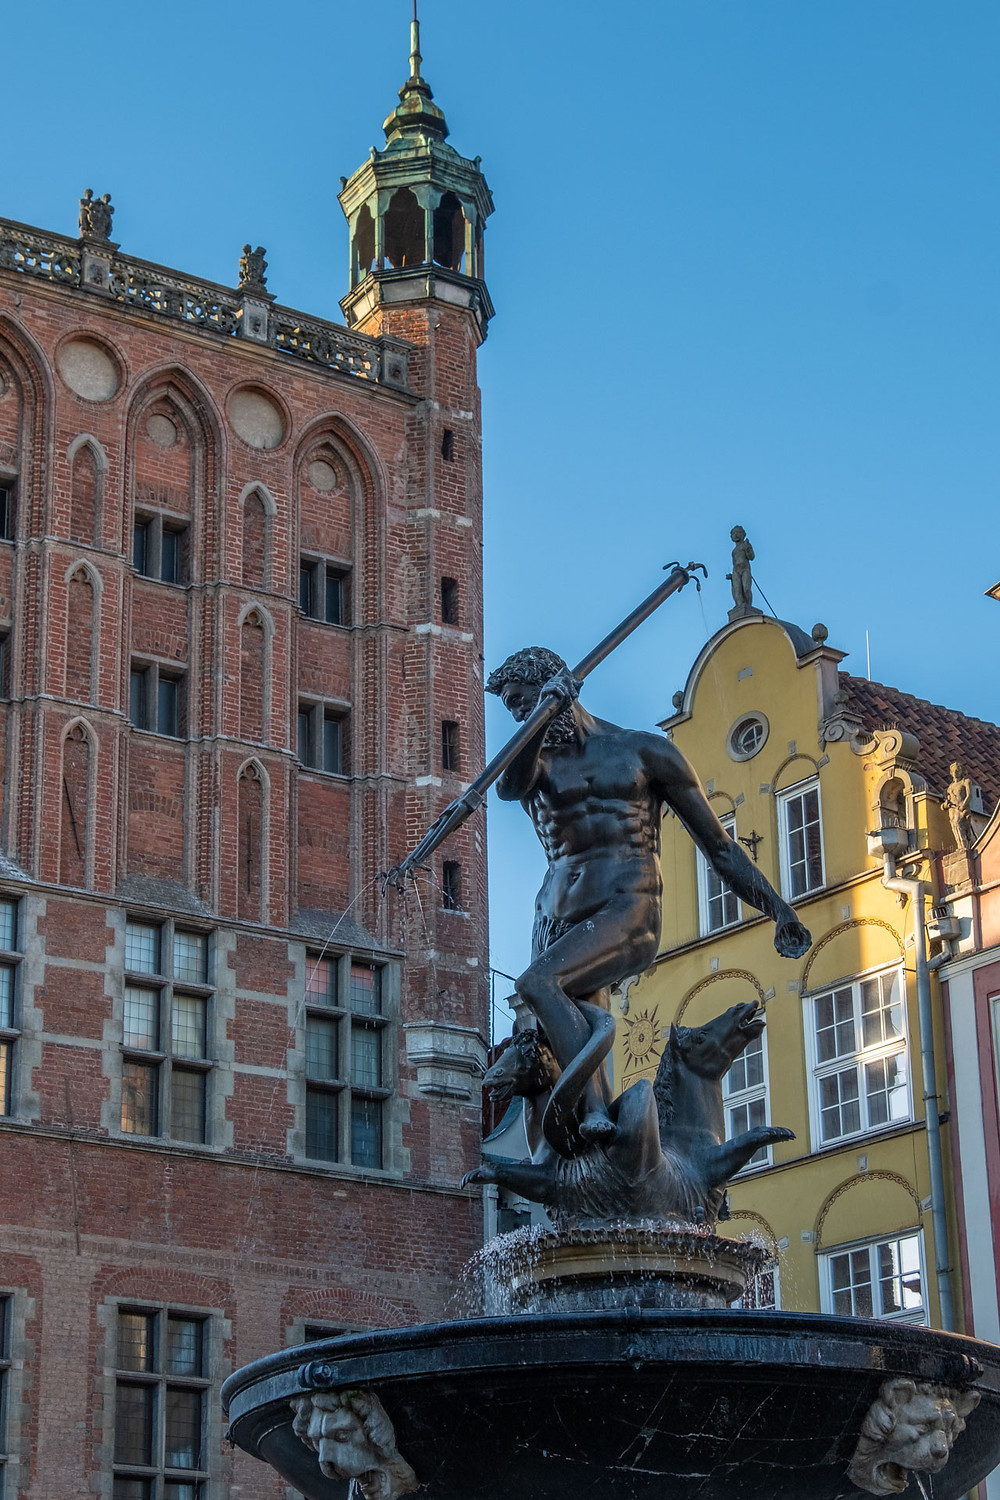 A statue in the Polish City of Gdansk